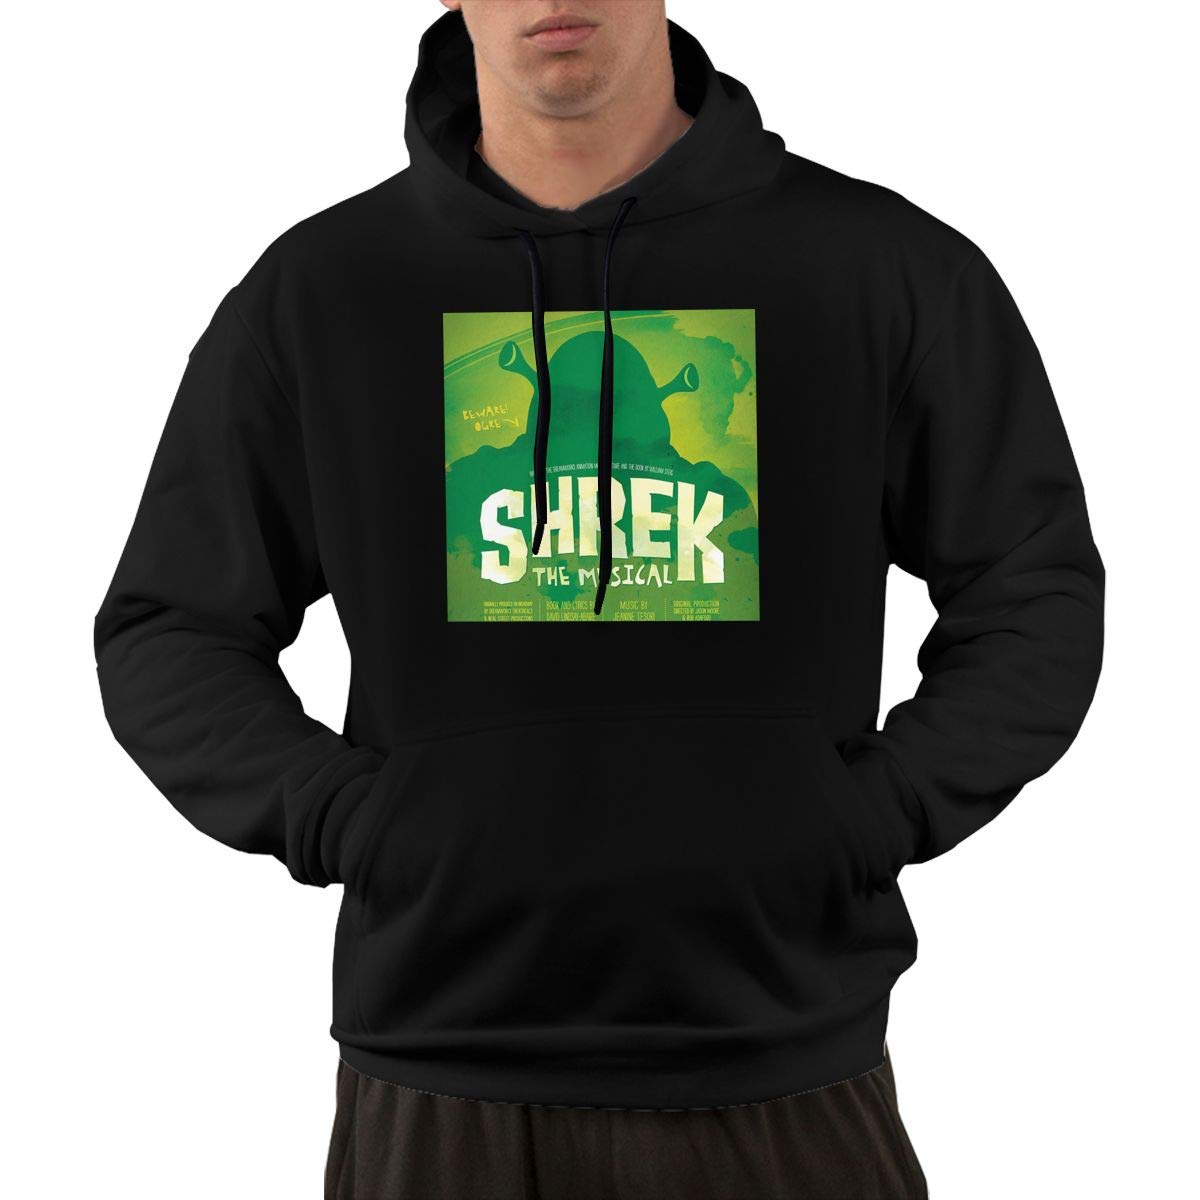 Eowlte Shrek The Musical Men Long Sleeve Casual Hoodie Pocket Sweatshirt Black 3XL